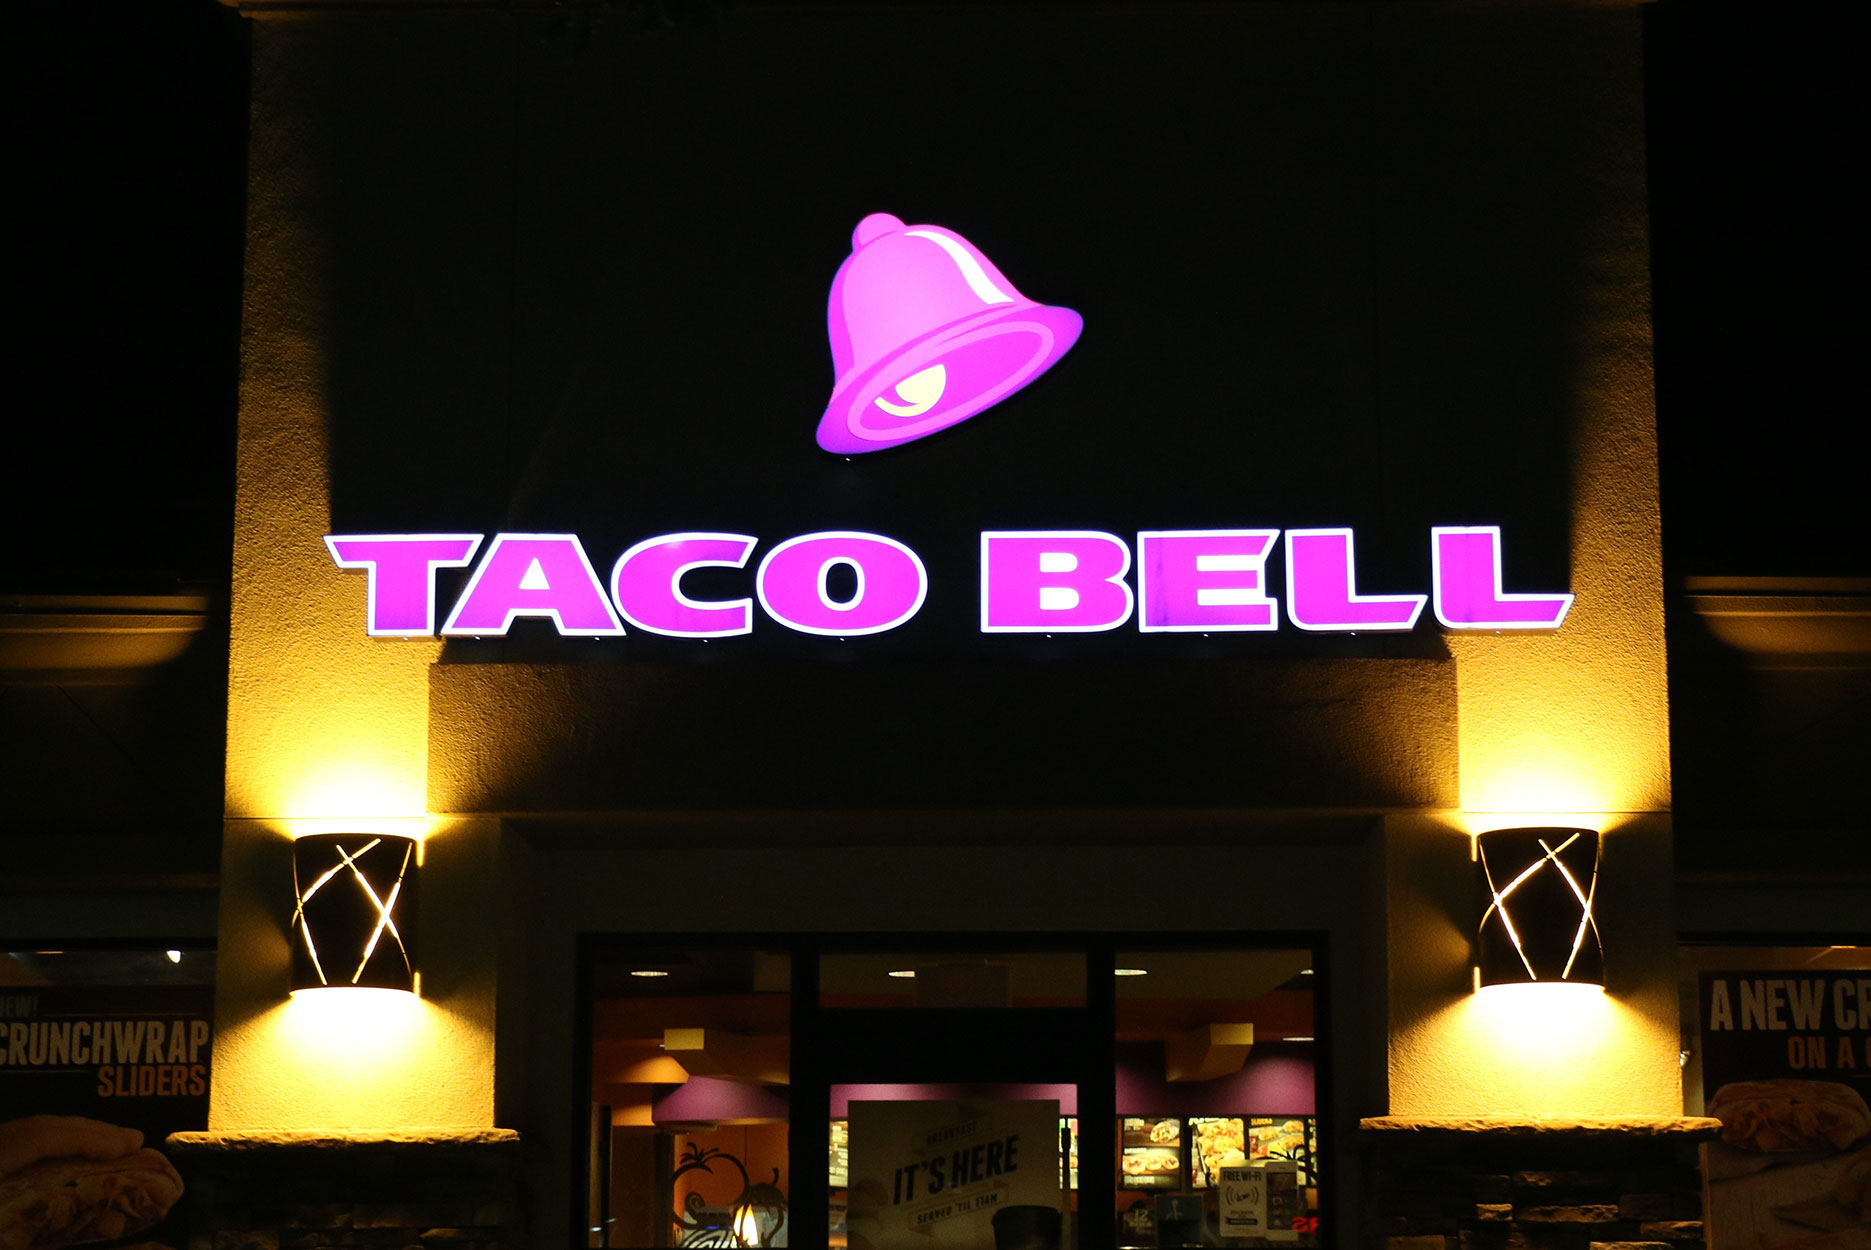 taco bell at night